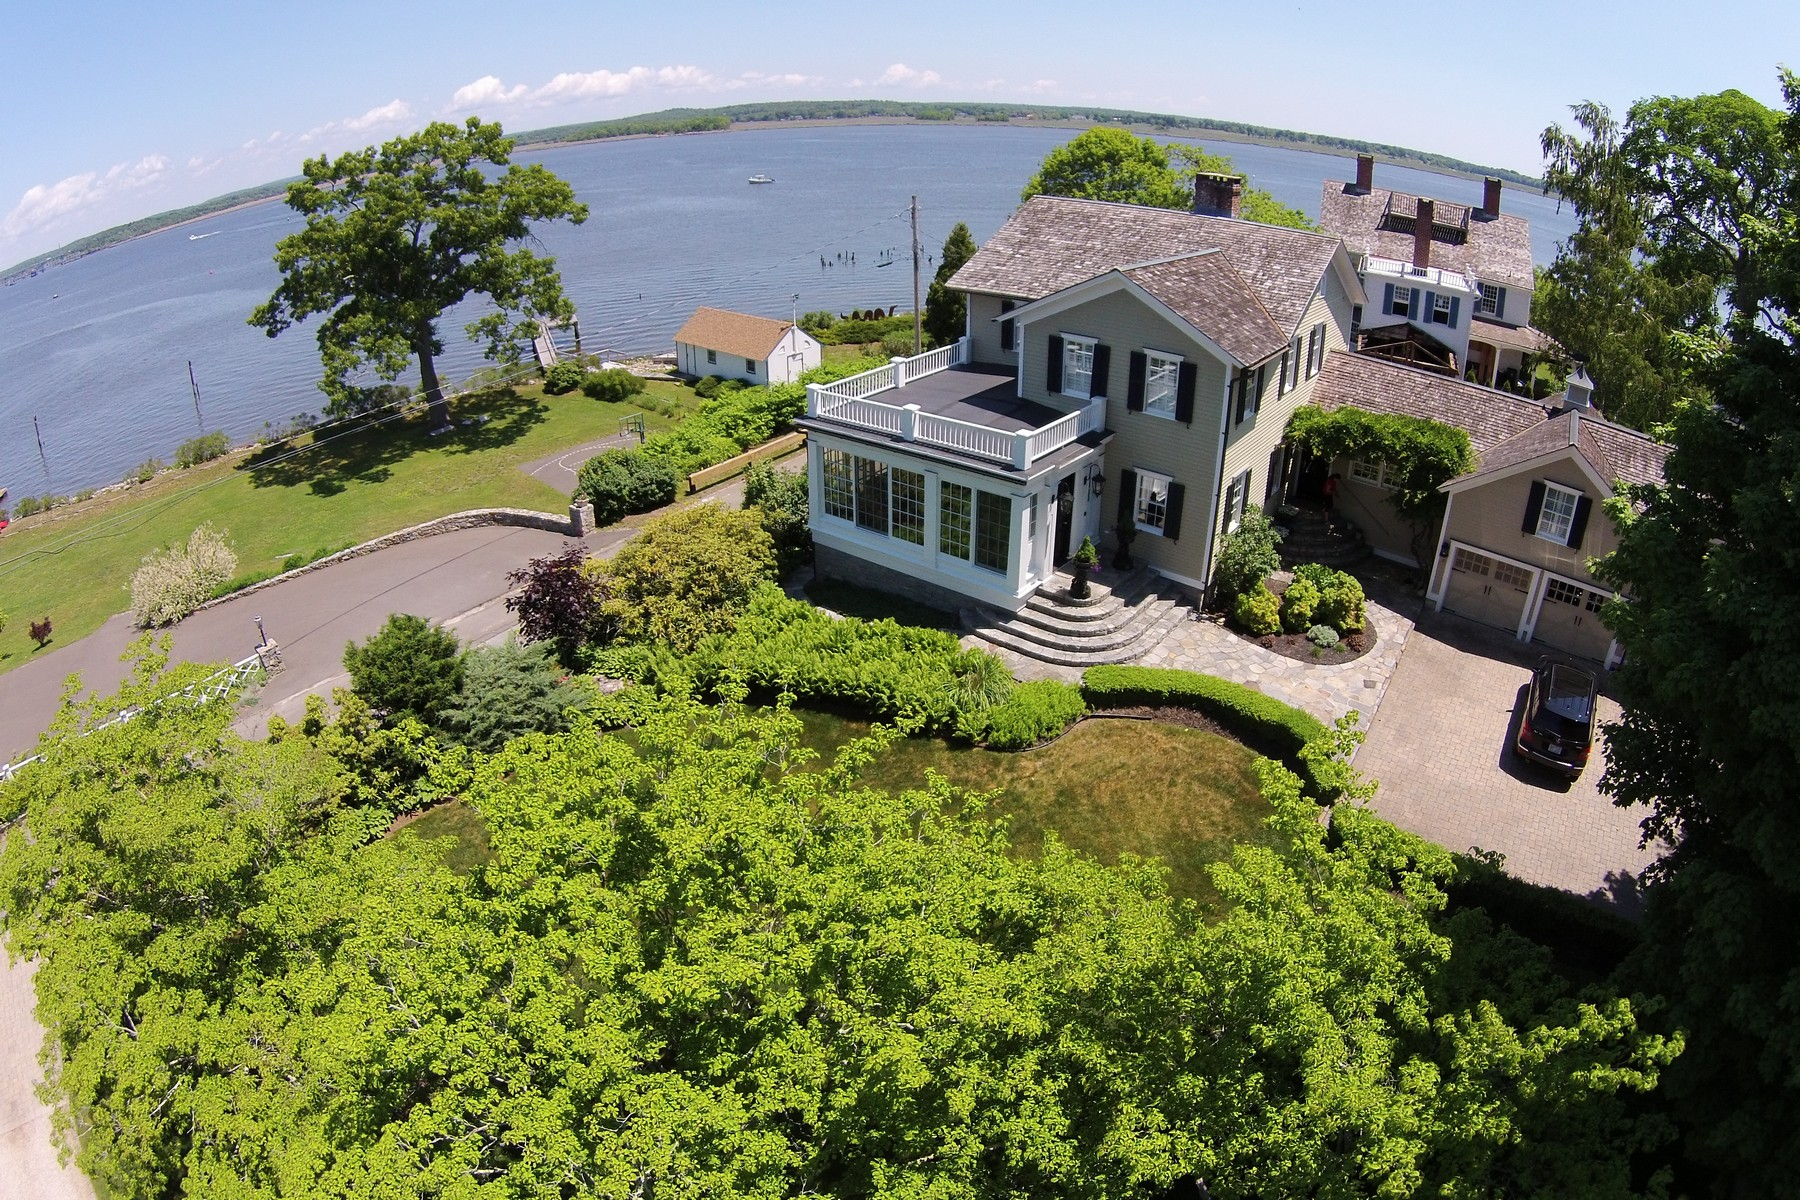 Villa per Vendita alle ore Historic Home with Views of Ct River 184 North Cove Rd Old Saybrook, Connecticut 06475 Stati Uniti